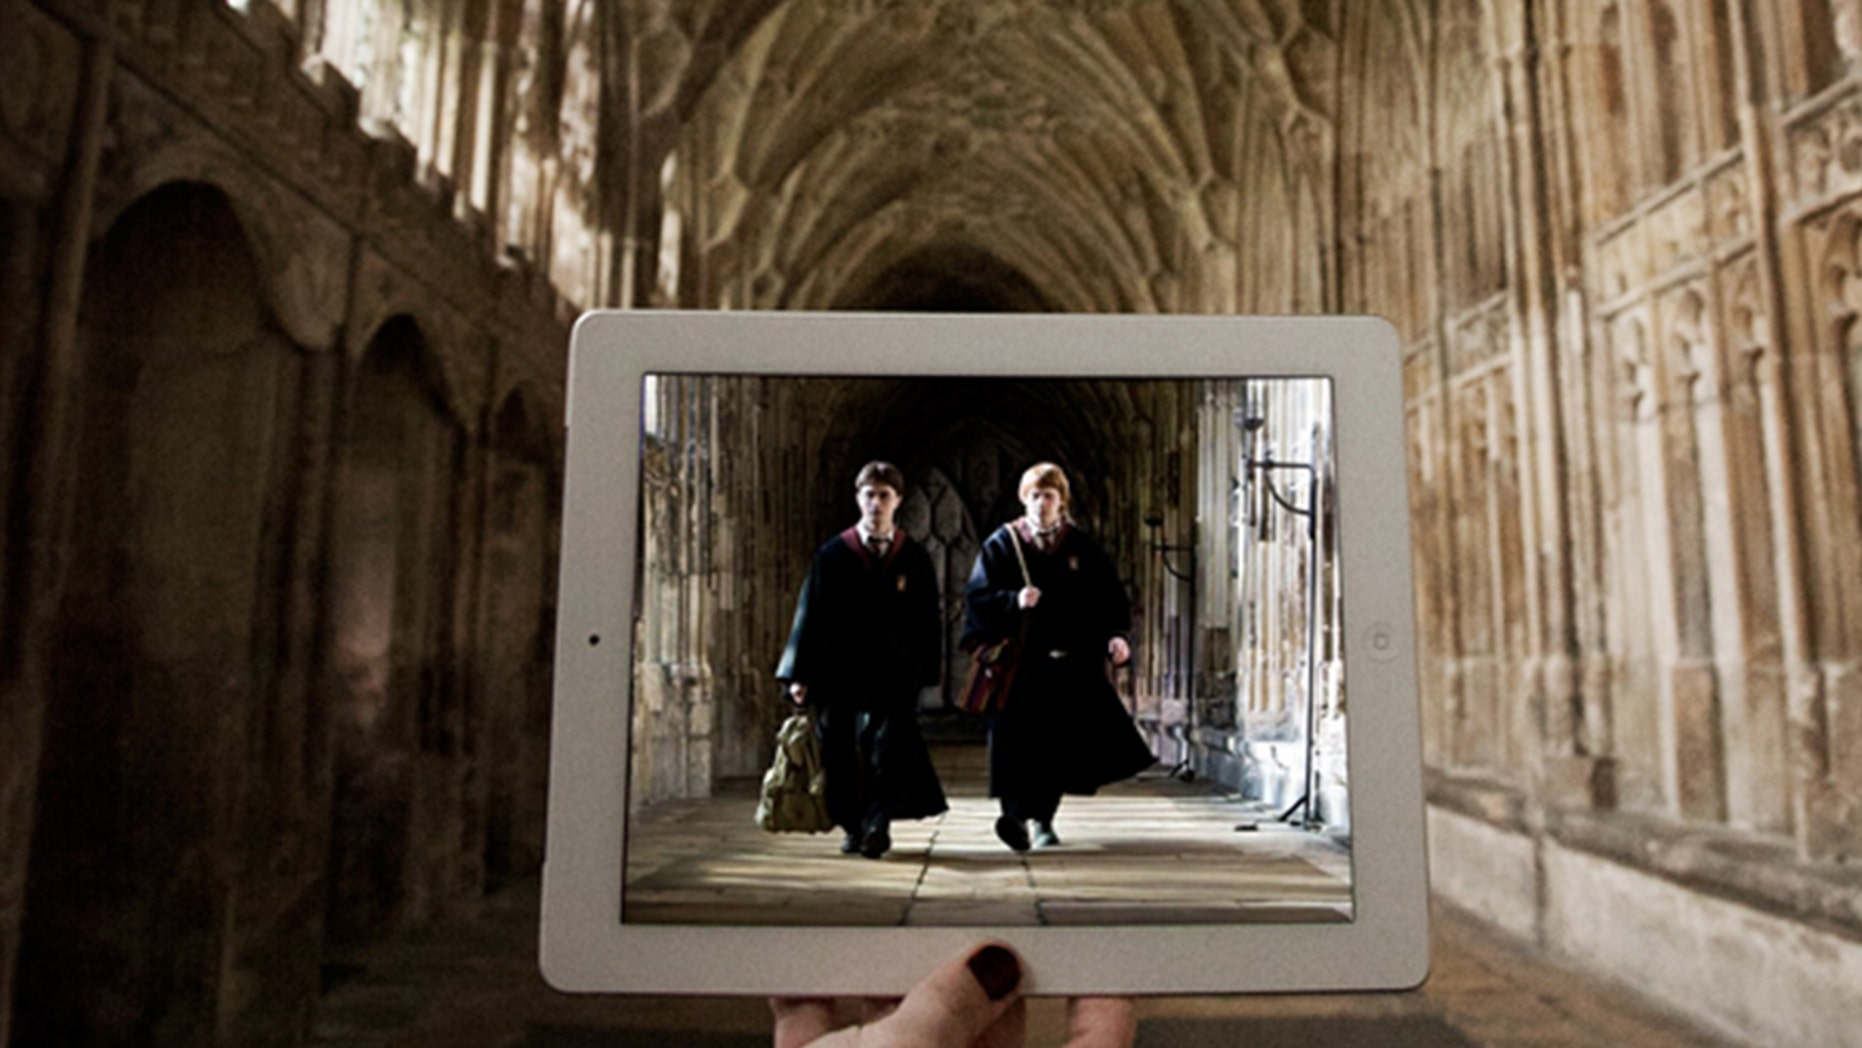 The blockbuster 'Harry Potter' film franchise has amassed fans of all ages around the world.